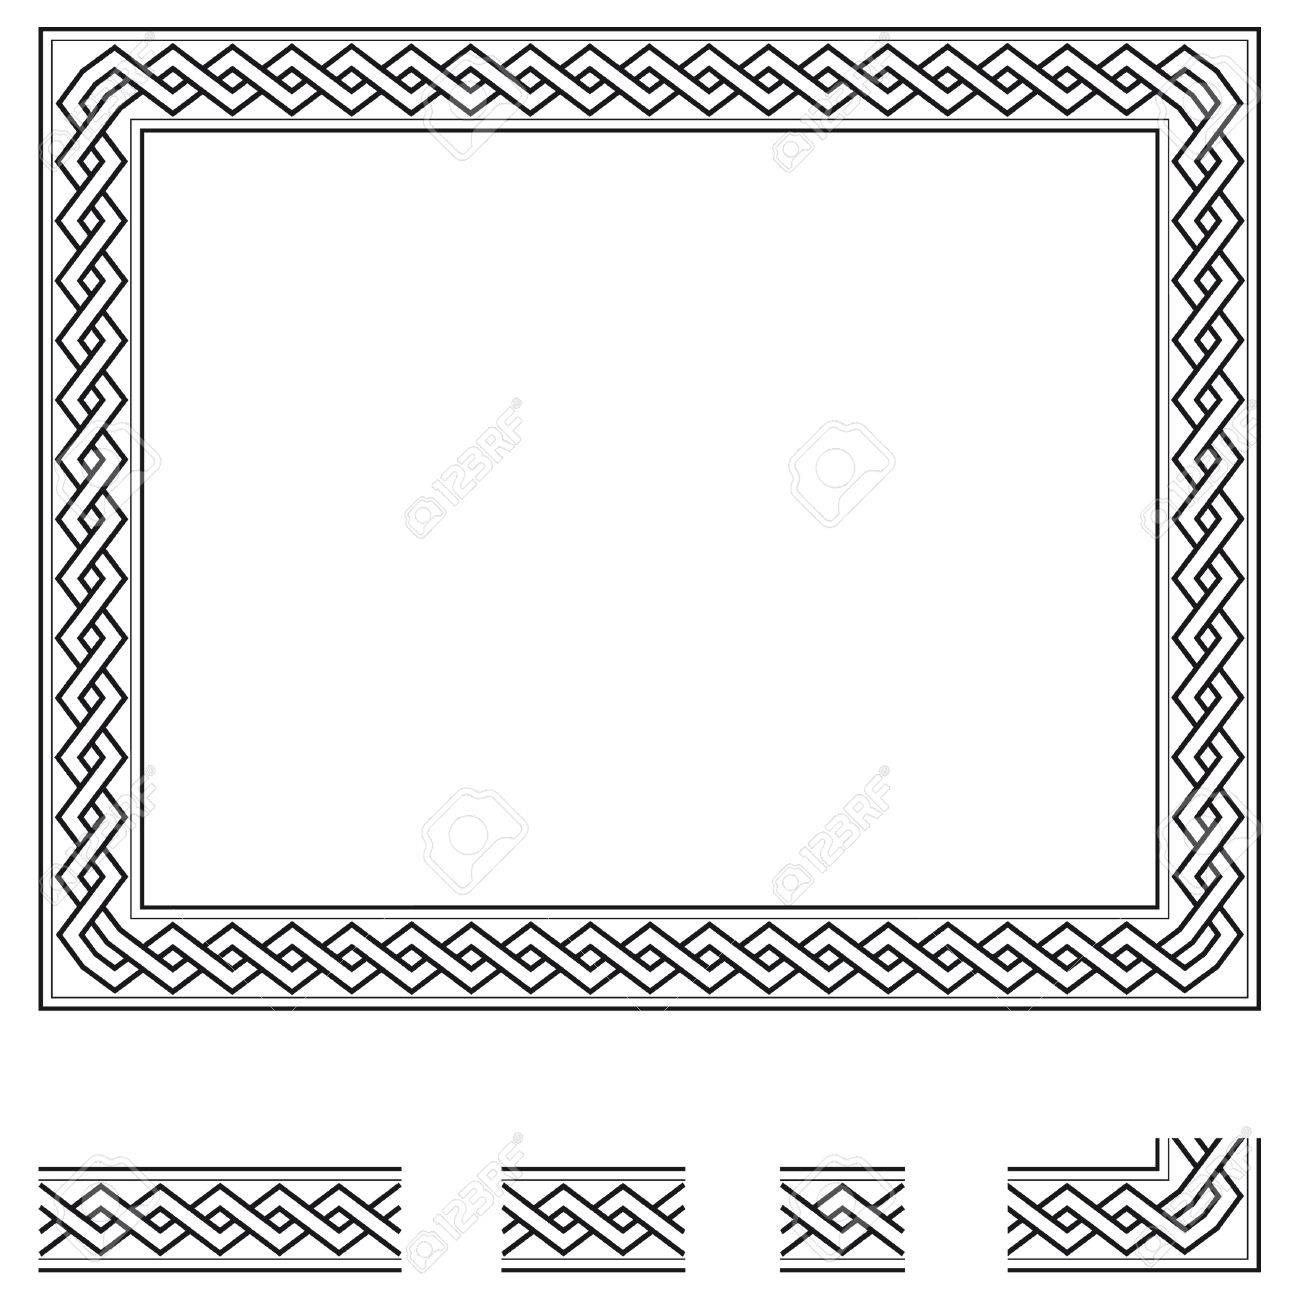 Vector frame and modular elements to create others at any size vector frame and modular elements to create others at any size stock photo 28418966 jeuxipadfo Choice Image